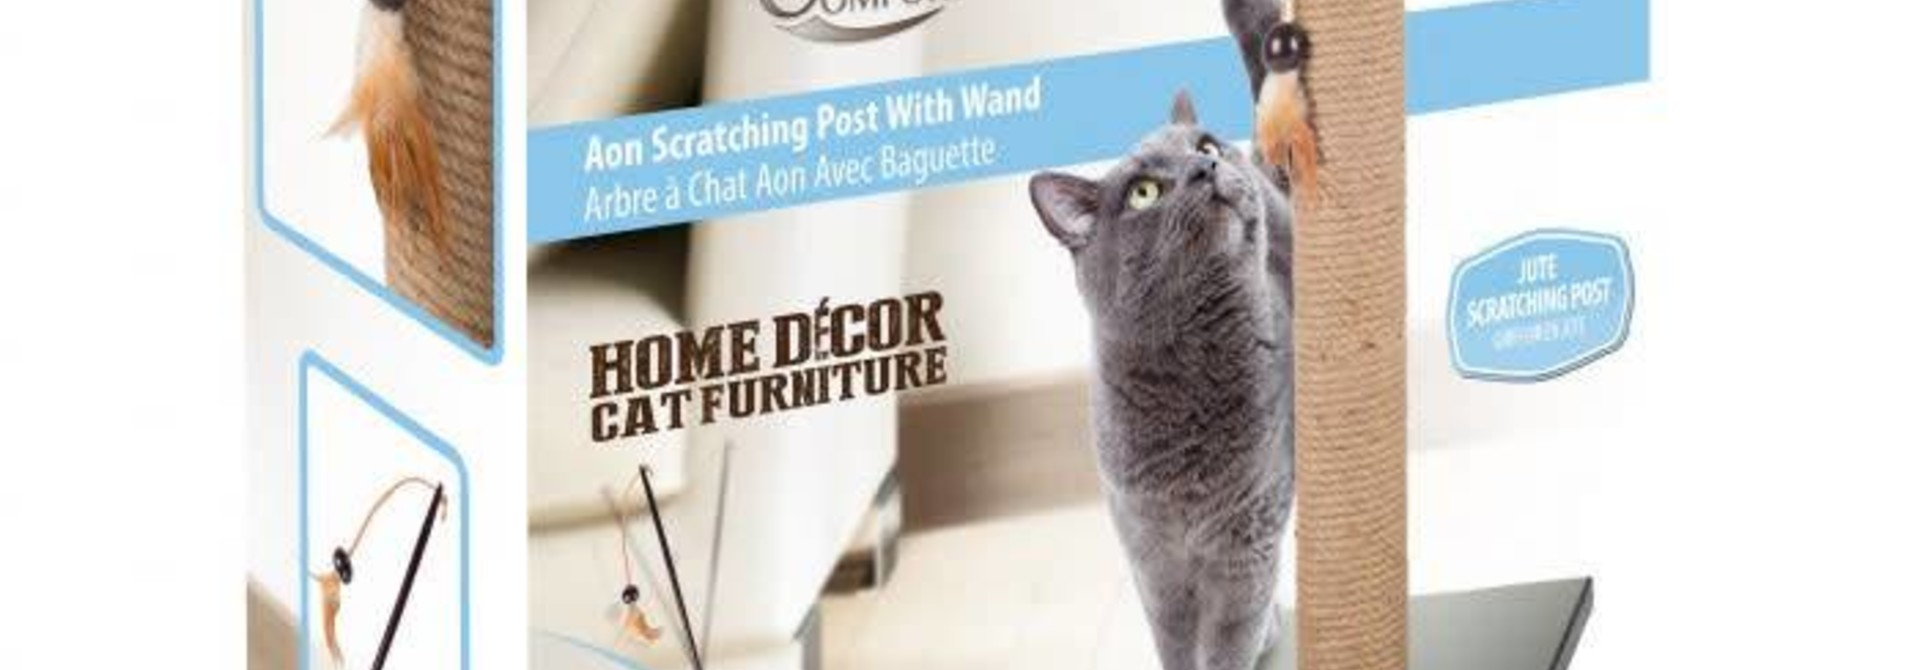 All for Paws Classic Comfort Aon Scratching Post w/Wand